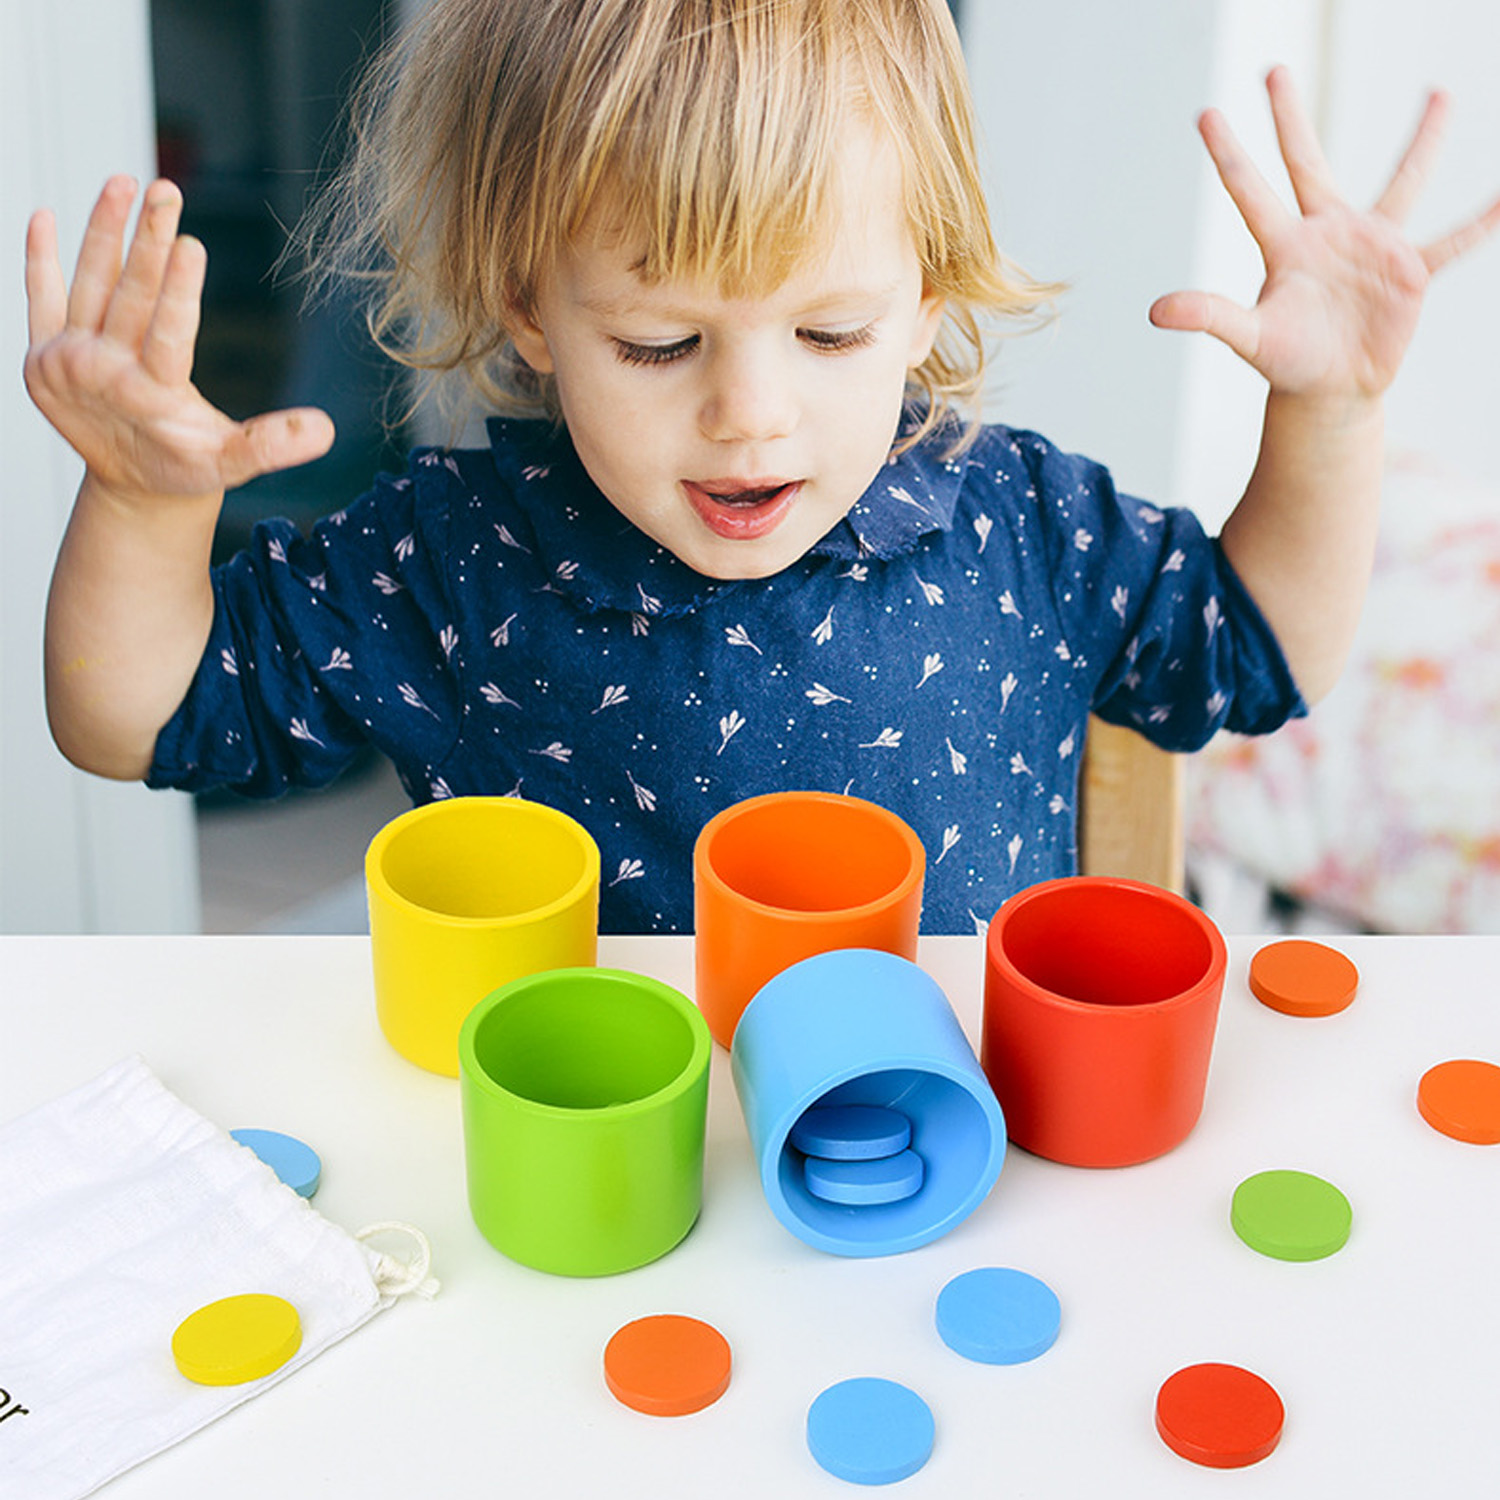 Montessori Wooden Color Circular Plate Sorting Stacking Cup Toy Kit Montessori Rainbow Matching Game Educational Toy For Toddler